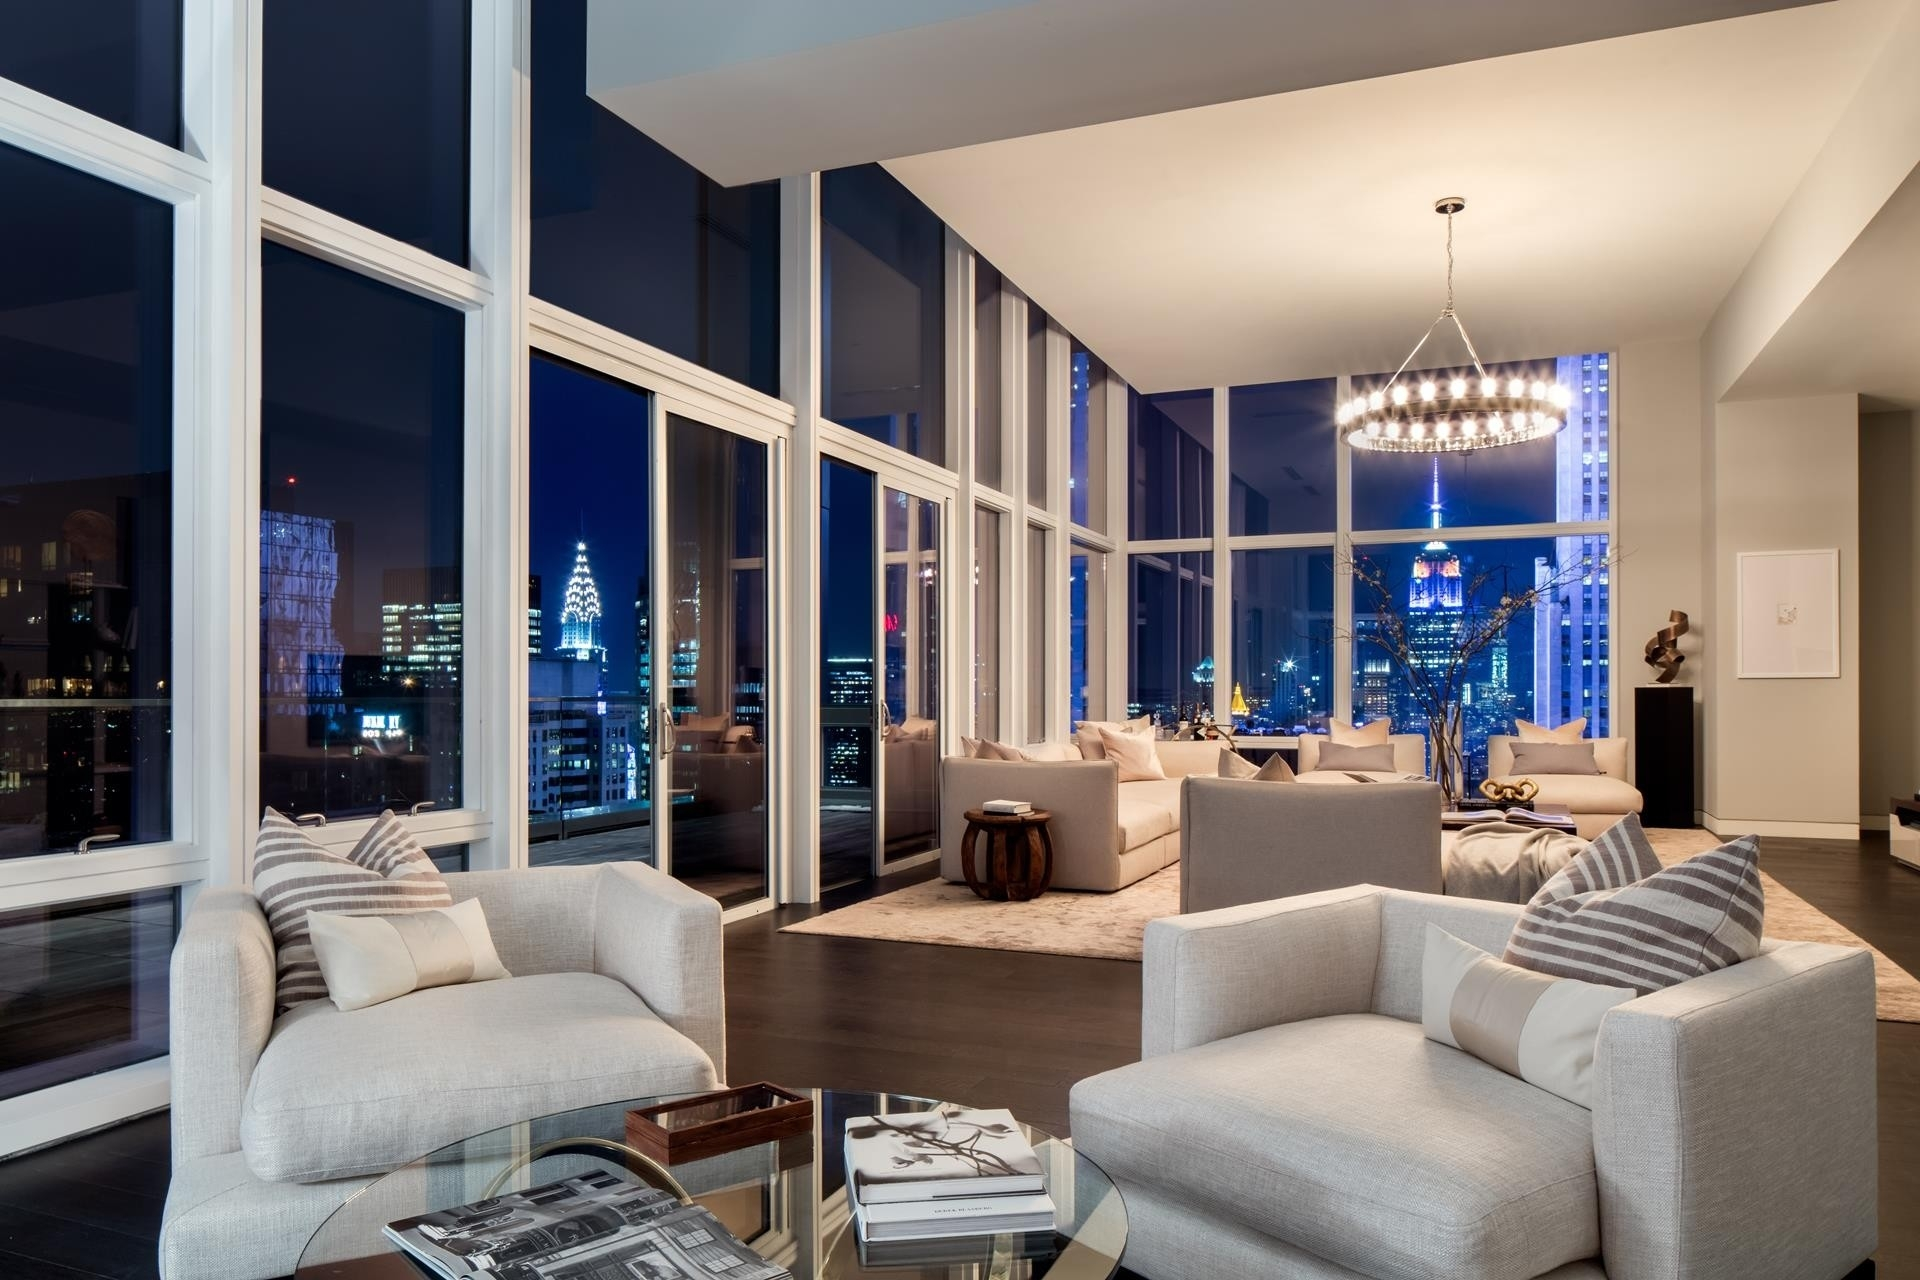 3. Condominiums for Sale at Baccarat Hotel And Residences, 20 W 53RD ST , PH48/49 Midtown West, New York, NY 10103